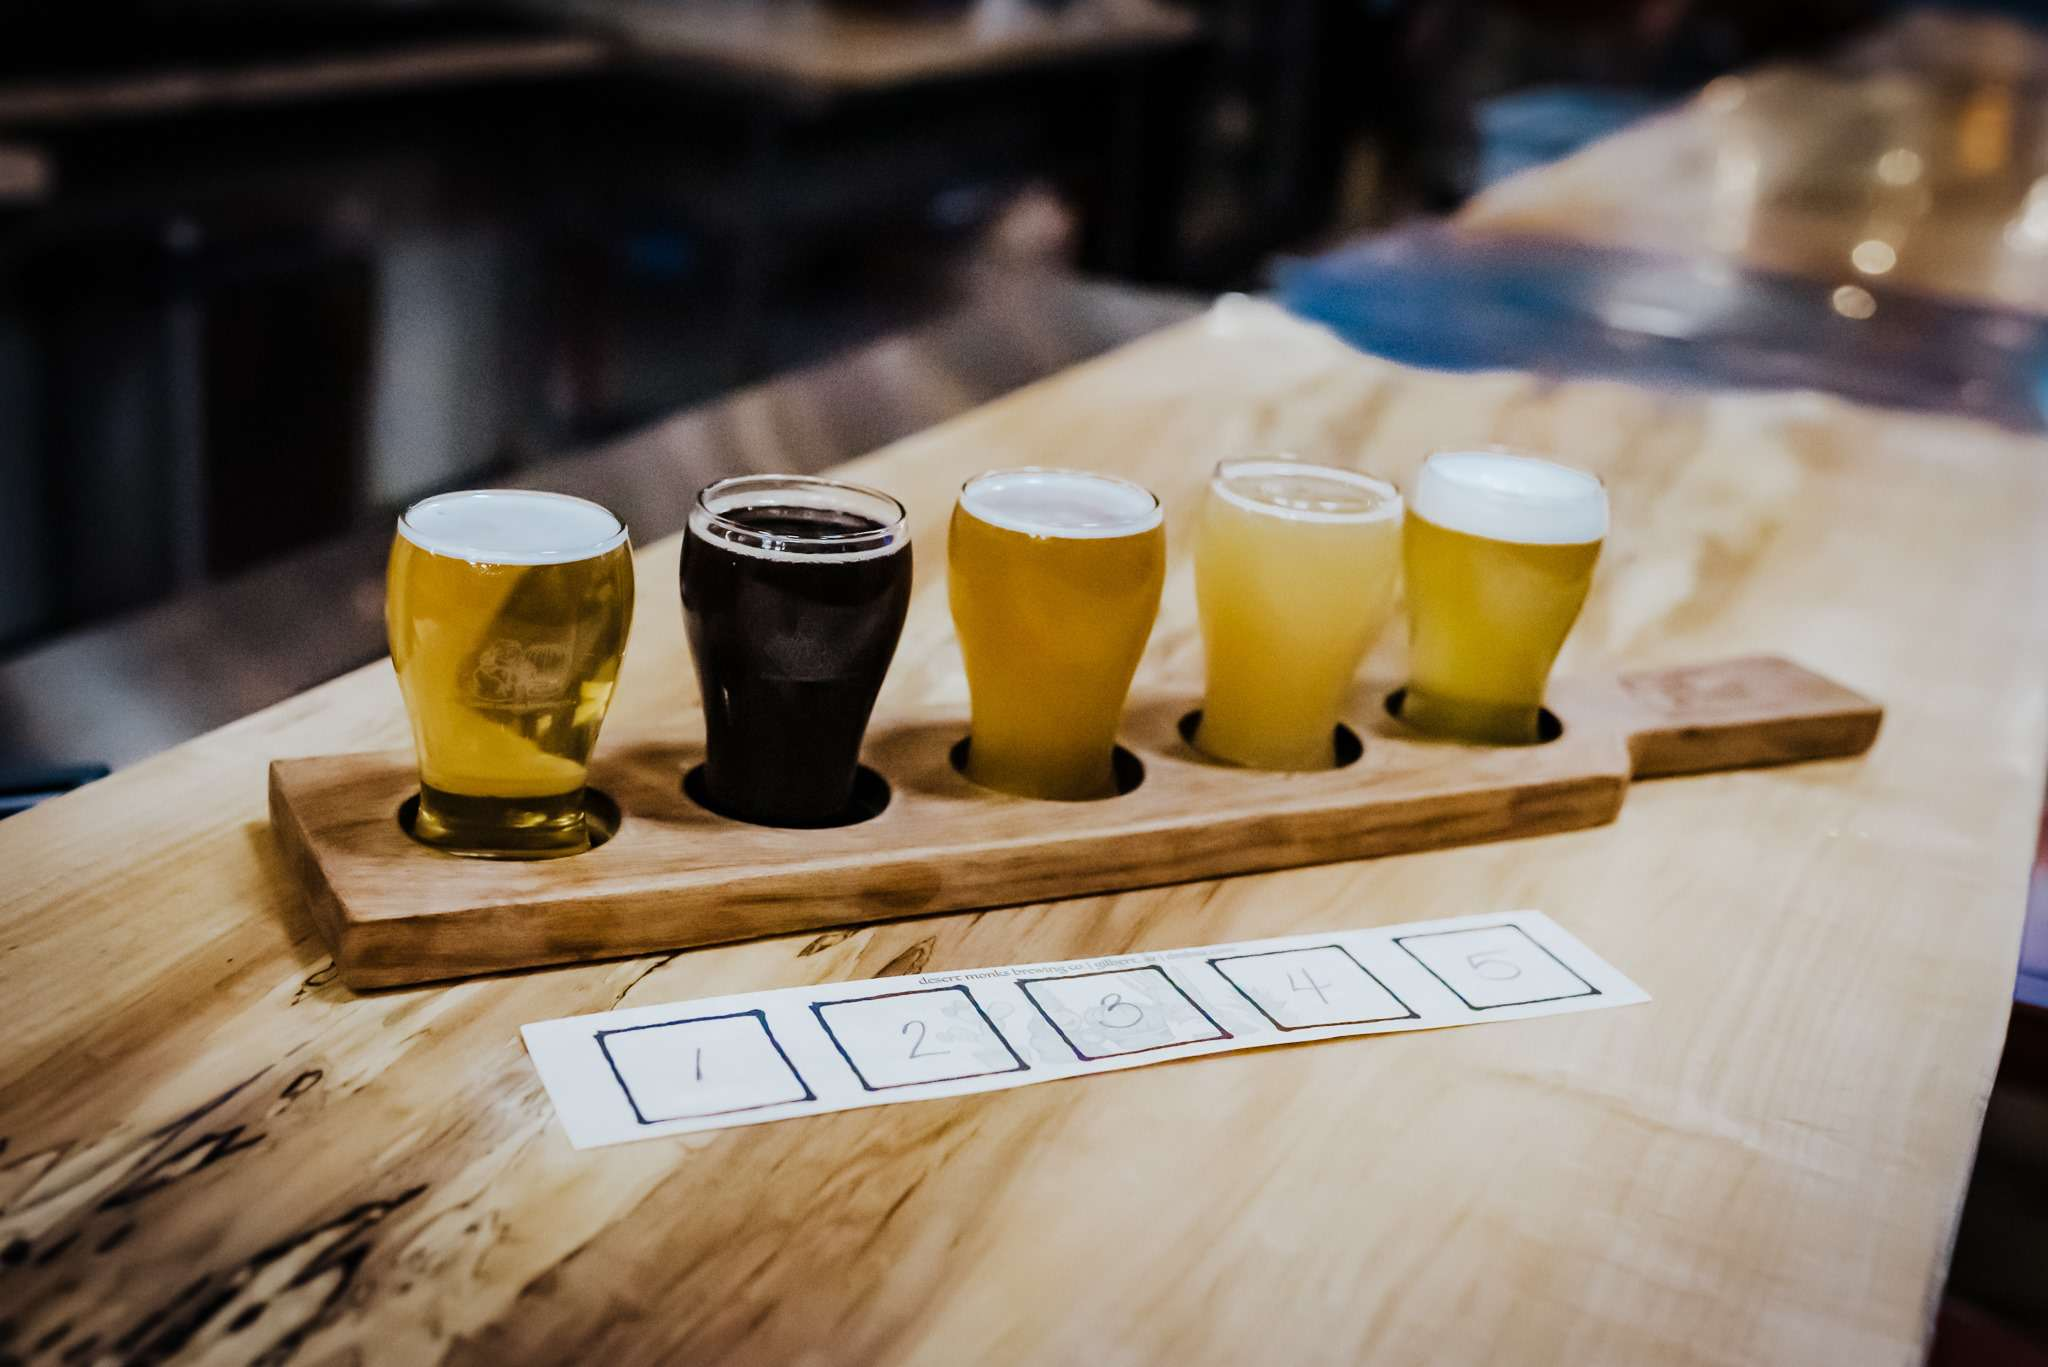 A flight of beer all different colors. A piece of paper numbering them lies in front of the flight